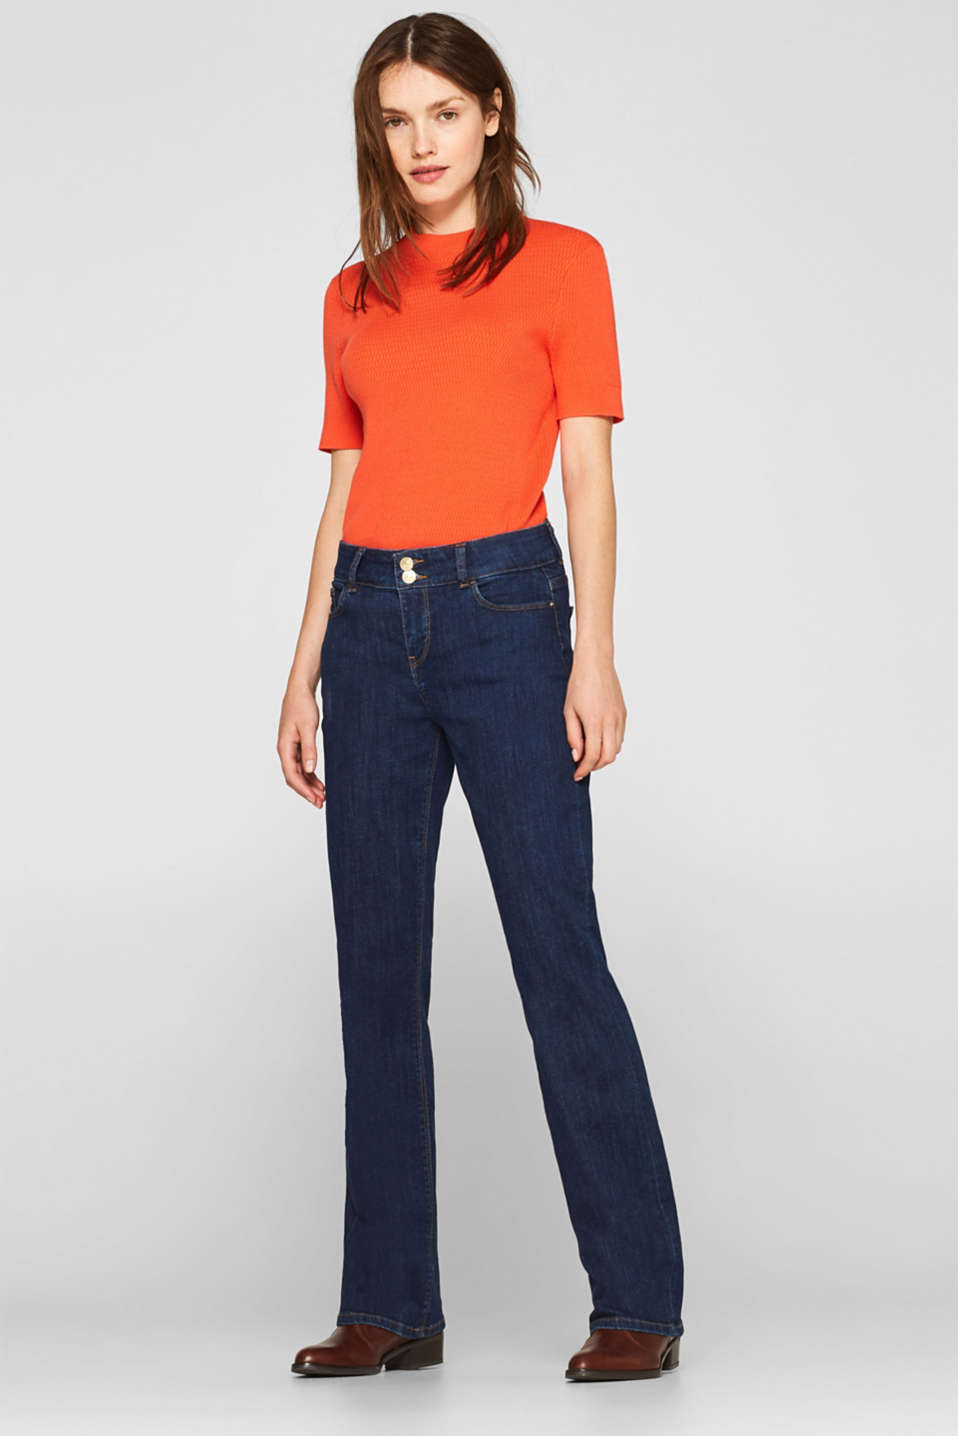 Esprit - Stretch jeans with double button